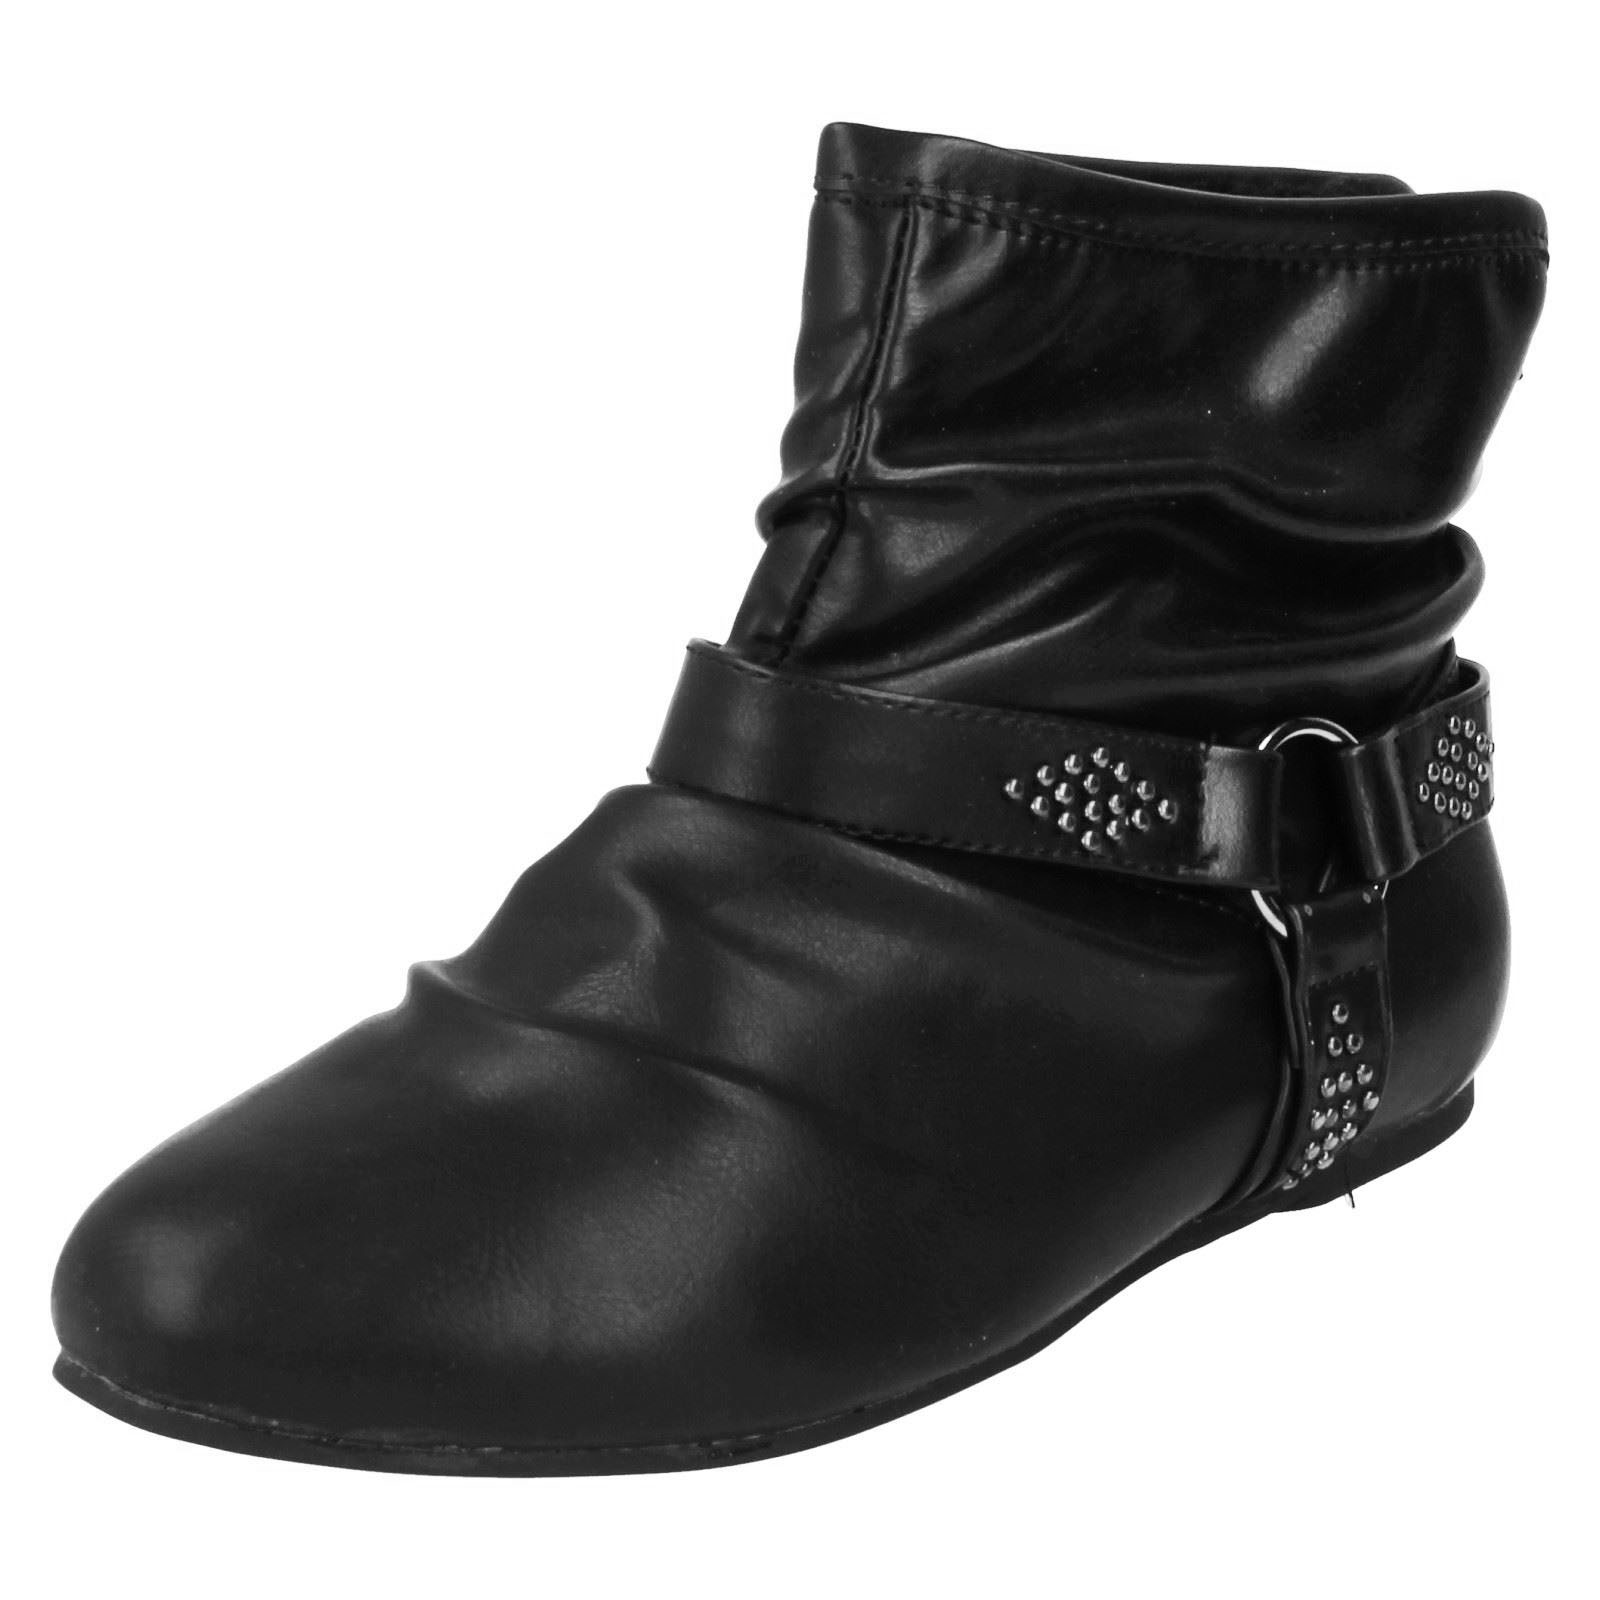 WOMENS FLAT SLIP-ON BLACK CASUAL BIKER COMFY BOHO WORK ANKLE BOOTS SHOES 3-8